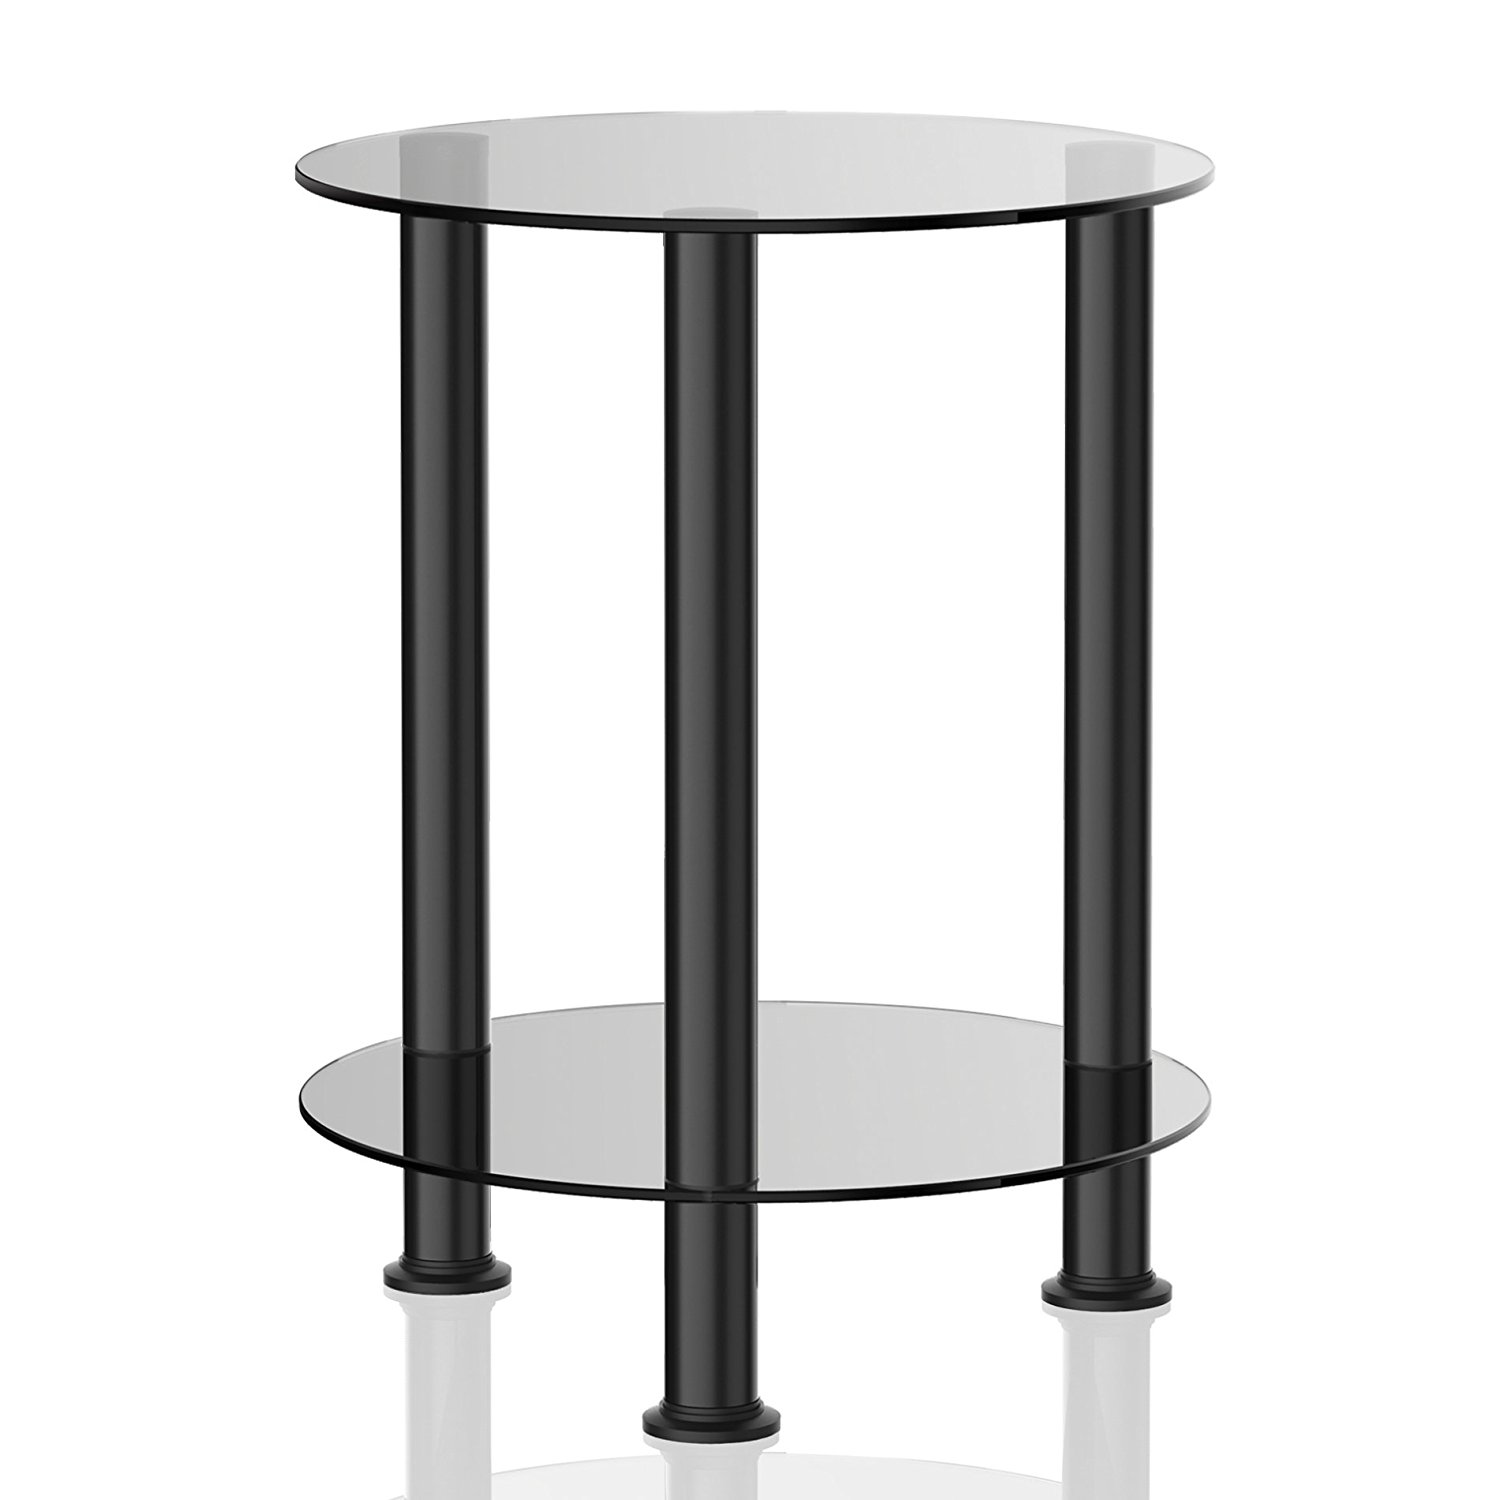 fitueyes grey glass end table accent side coffee black pottery barn round chair danish mid century modern red tables decor rustic furniture edmonton media console folding bedroom